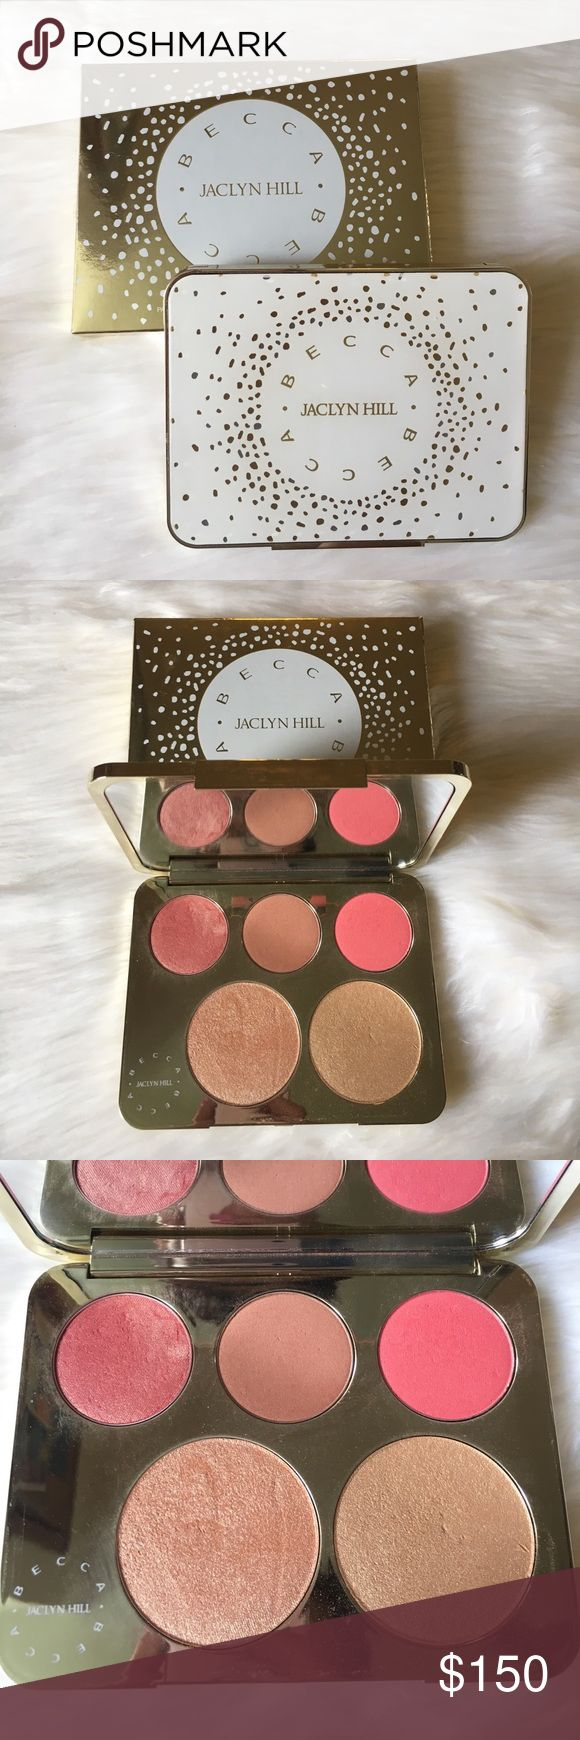 1 DAY SALE! •LE • Becca x Jaclyn Hill Face Palette This item speaks for itself! • It's absolutely stunning! • The packaging is heavy and beautiful • 3 Blush shades ( Rosè Spritz, Amaretto & Pamplemousse) 2 Highlight shades ( Champagne Pop & Prosecco Pop) • This item is no longer available • I still have the original box & I have only used Champagne Pop & Rosè Spritz once - other than that it is untouched • I am VERY reluctant to sell - so the price is ABSOLUTELY 100% FIRM & I will NOT TRADE…